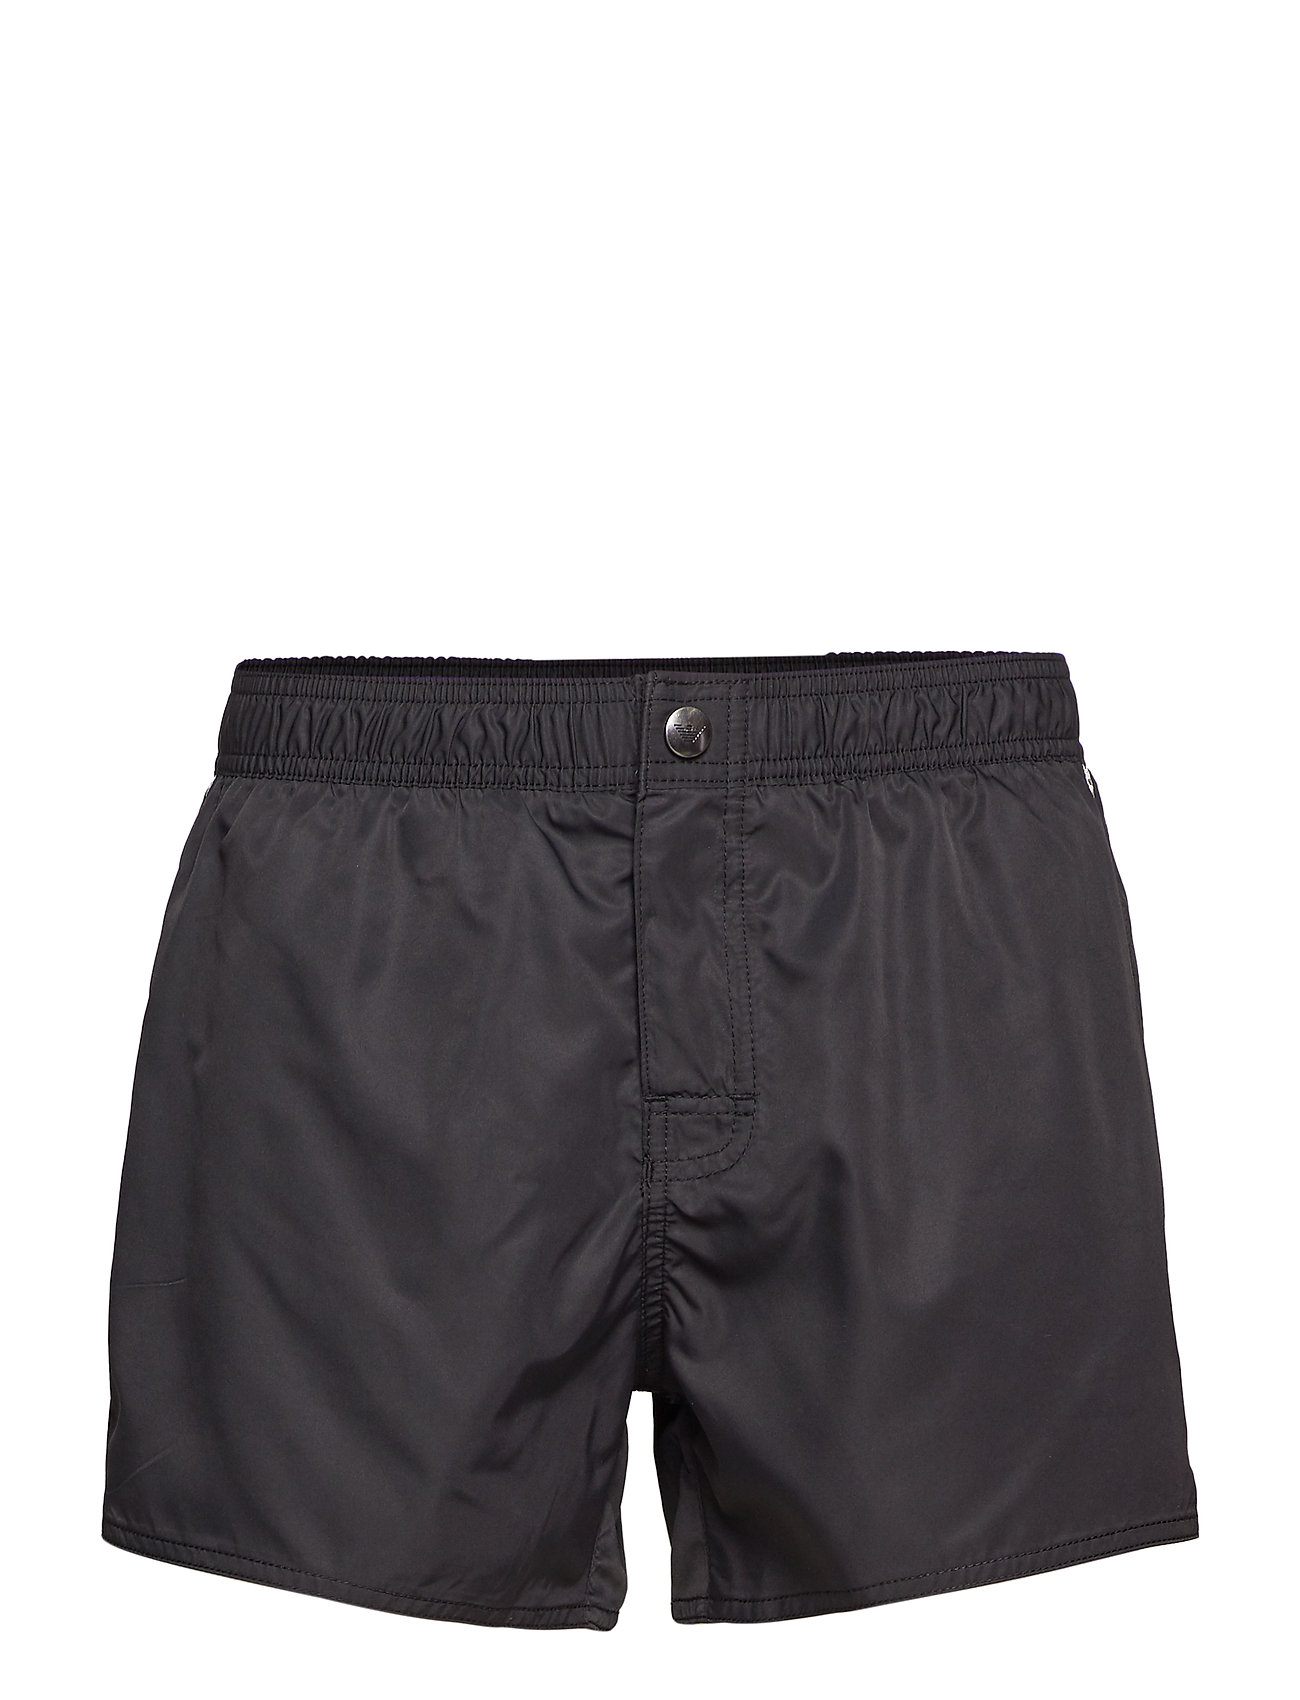 8815f59686d ROSSO Emporio Armani Mens Woven Shorts badeshorts for herre - Pashion.dk